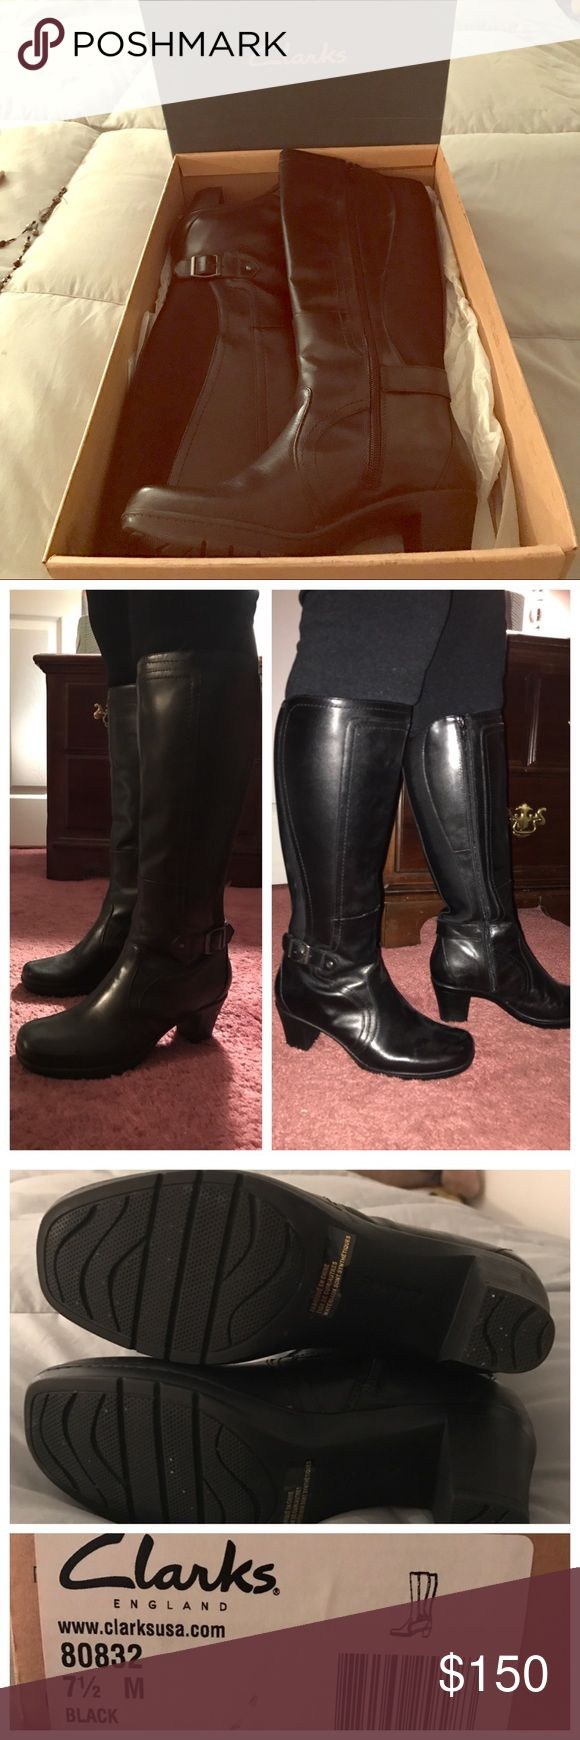 "❤️VDAY SALE! BNIB CLARKS BLACK LEATHER BOOTS OMG How beautiful are these! Brand new in box, never worn, these need a new home! Clarks is known for amazing quality leather, these do not disappoint! Super stylish but still comfortable with 2 1/2"" heel. Shaft height is 13 1/2"" from base of the sole. Regular calf width, not wide nor slim. Silver hardware. Please ask any/all questions before purchasing, happy to help! These are my mom's boots, she does not NEED to sell them, so please no…"